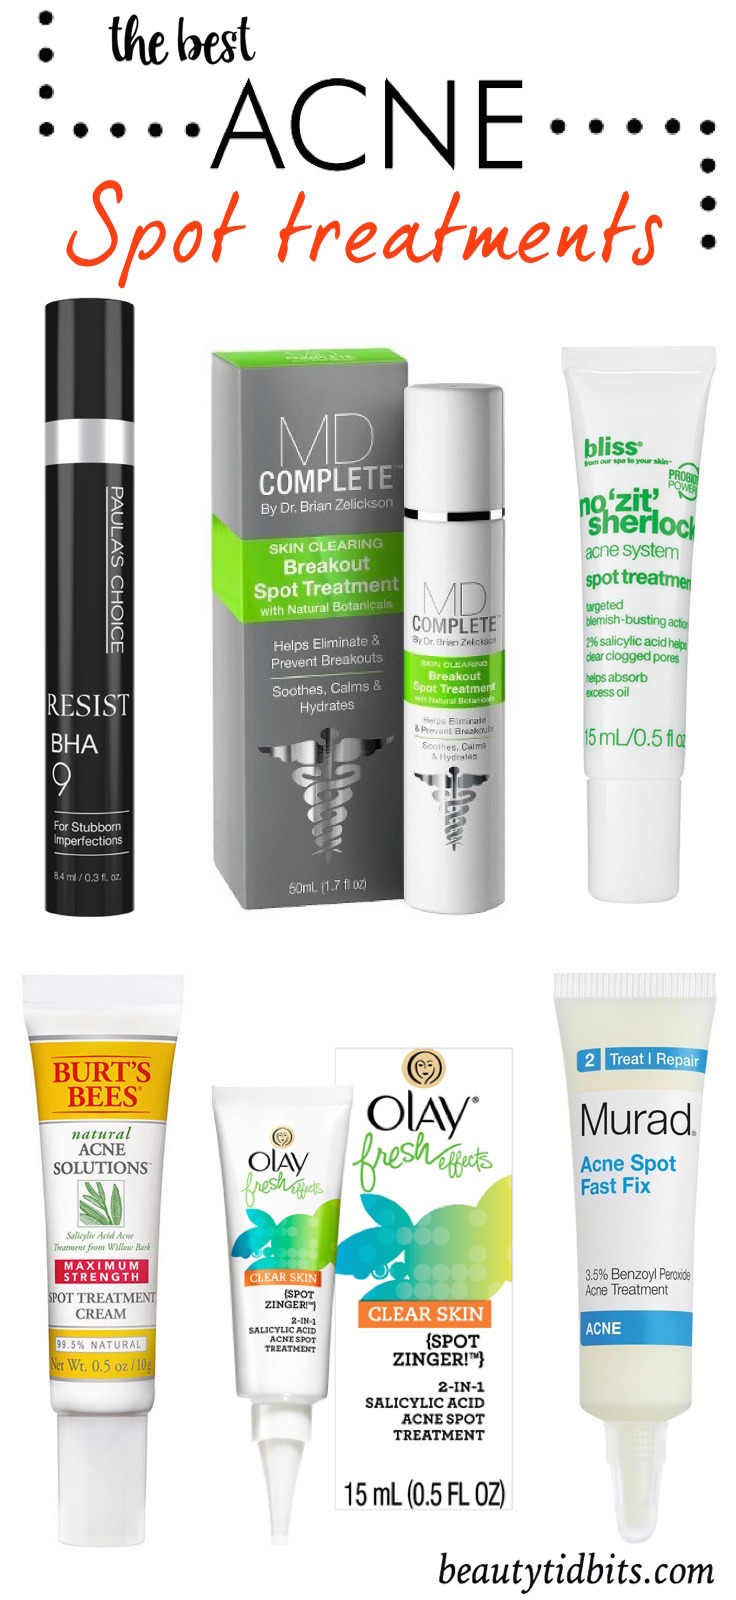 Best Acne Spot treatments